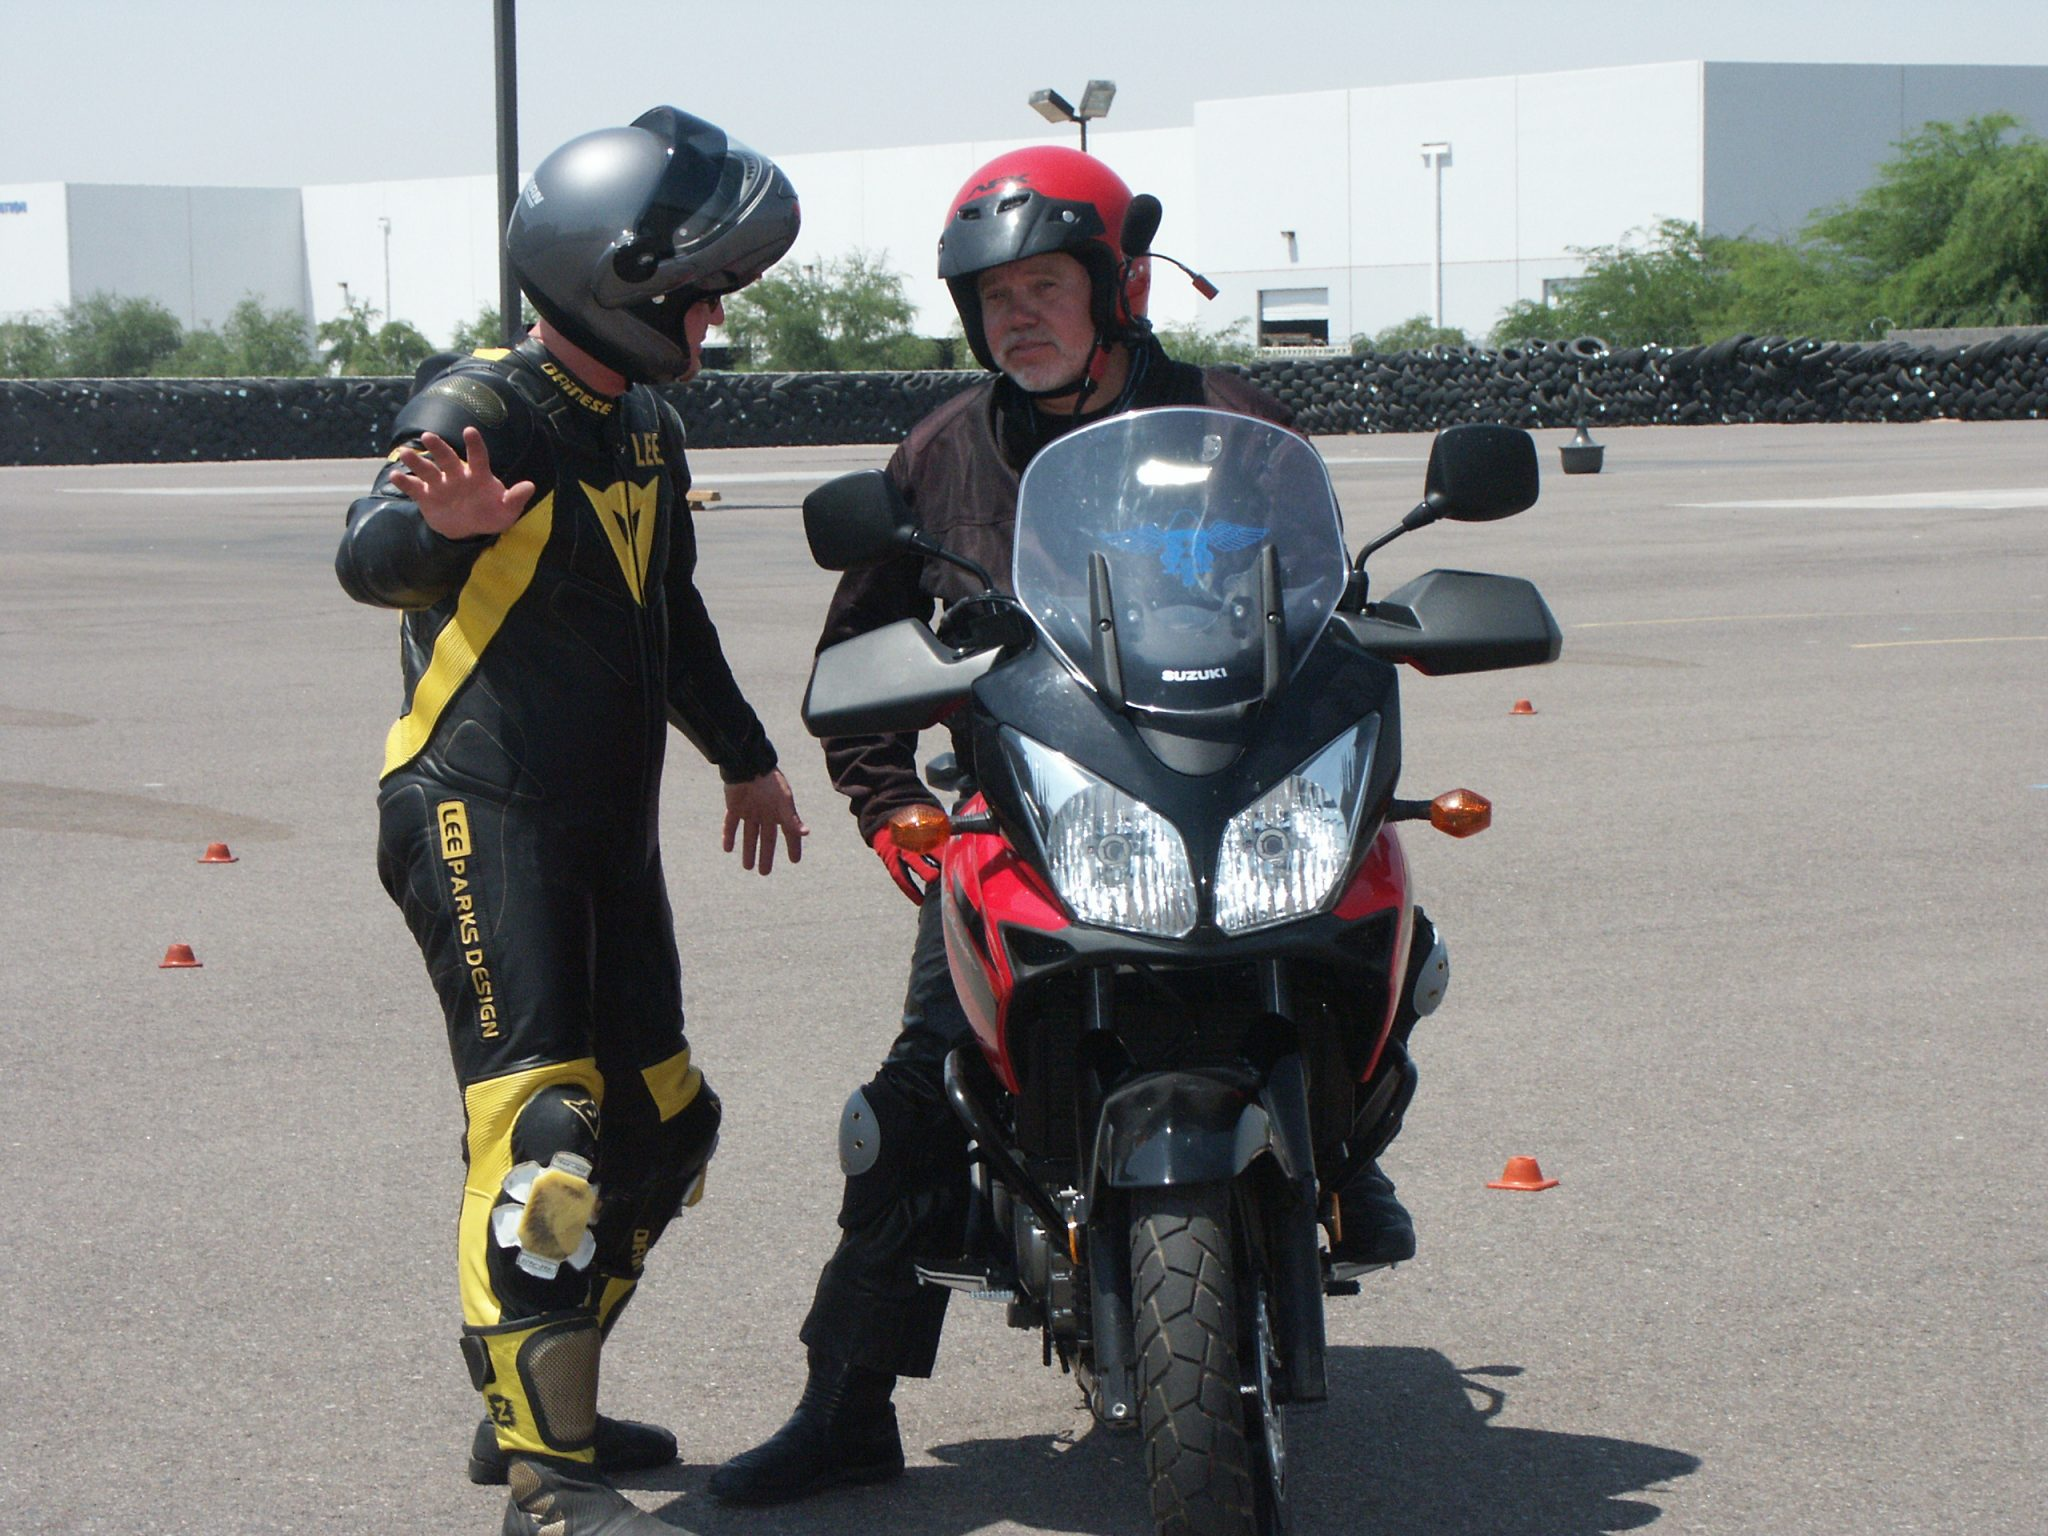 two men and one motorcycle